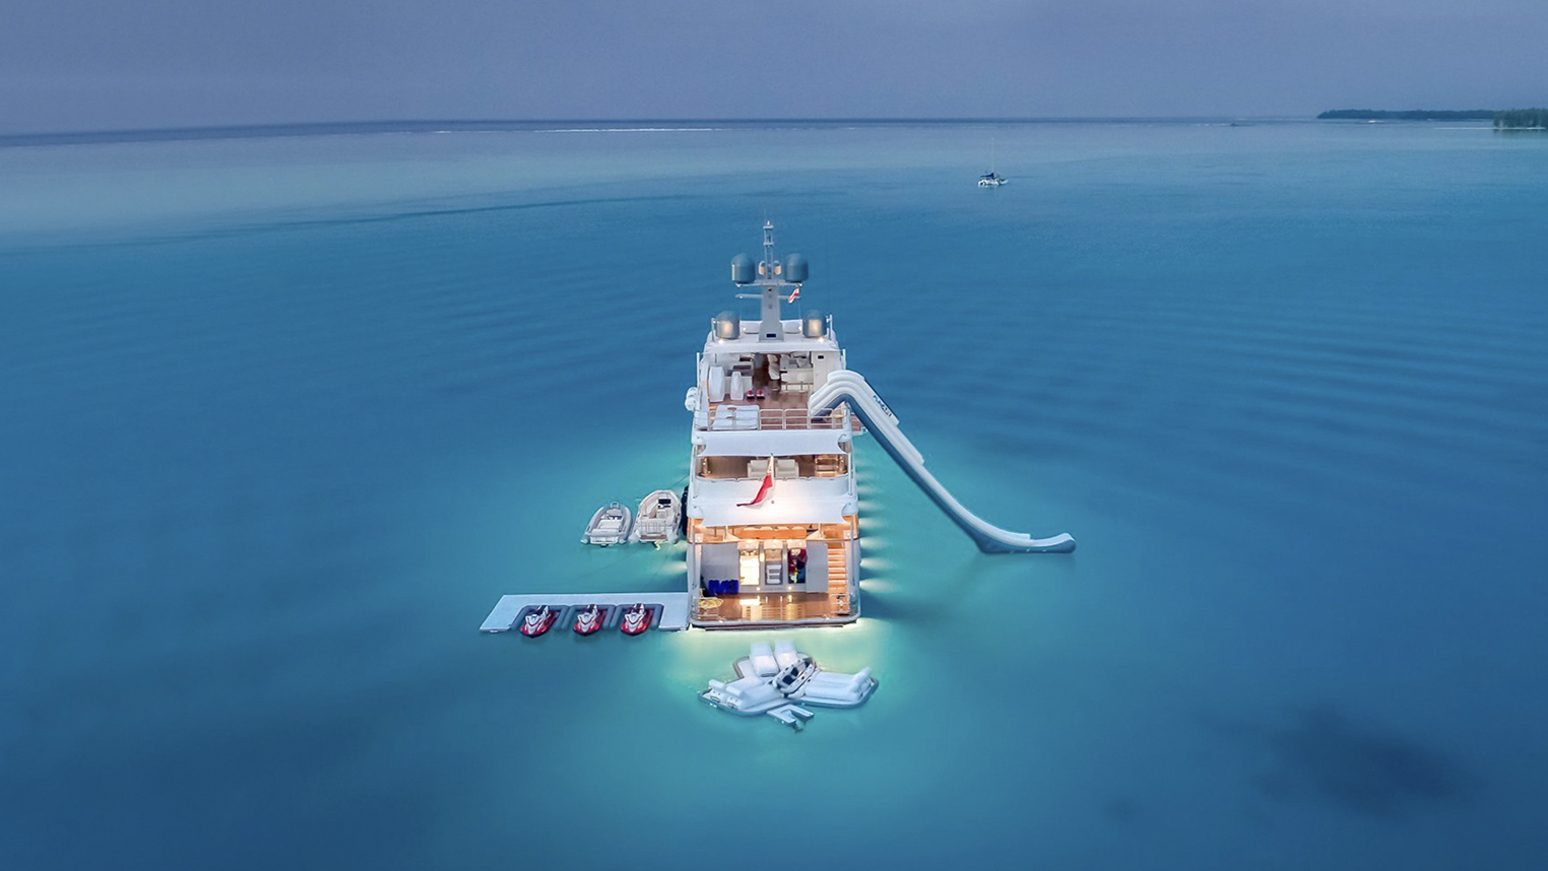 Yacht with Inflatable Floating Island